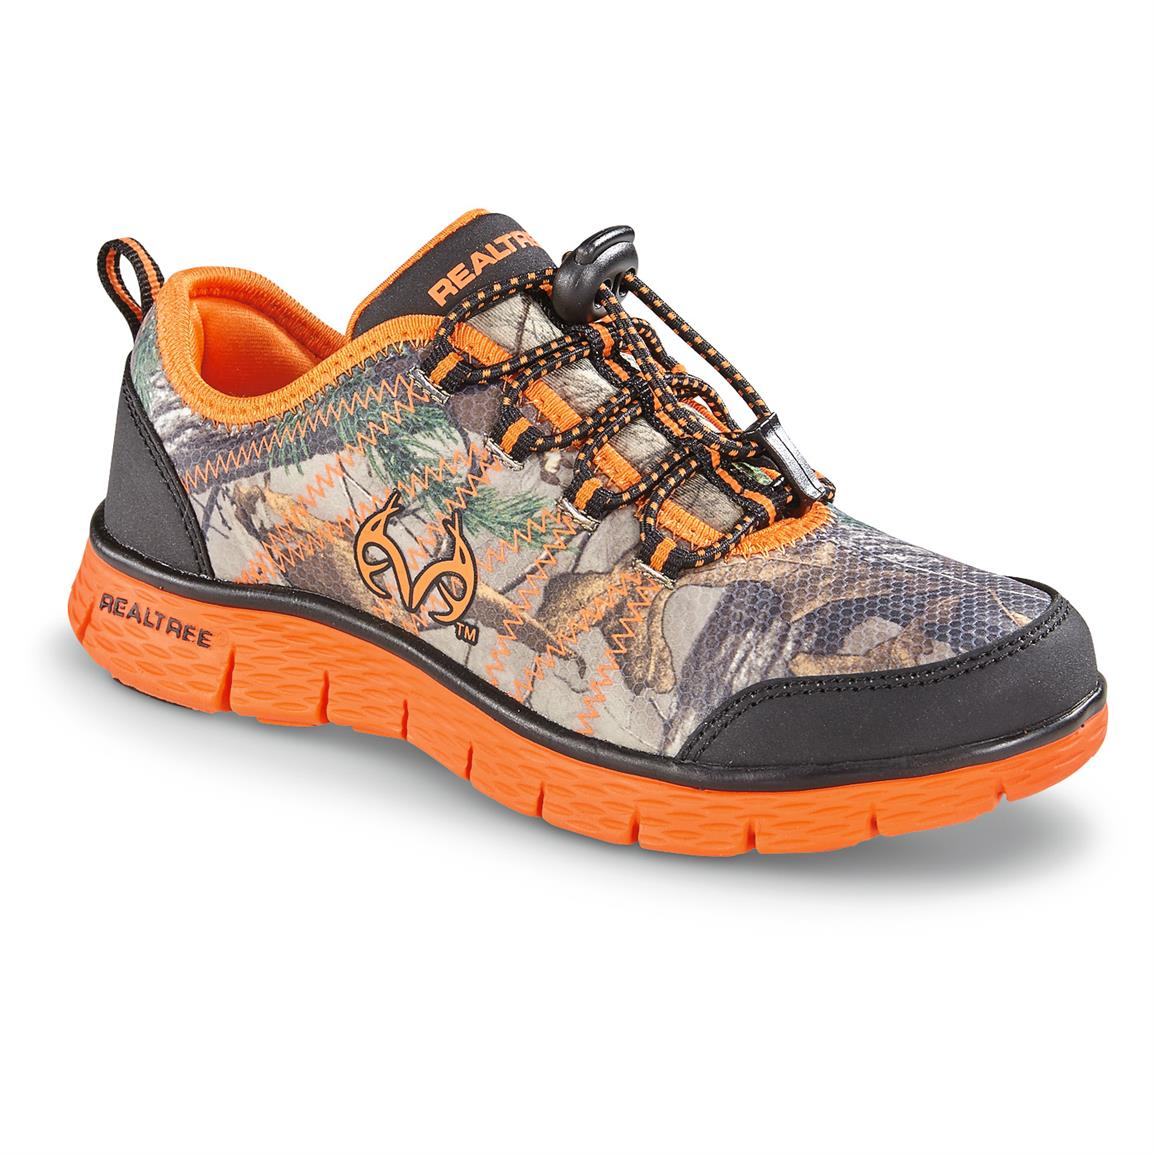 Realtree Kids Eagle Athletic Shoes with Free Lunchbox, Realtree Xtra / Bolt Orange